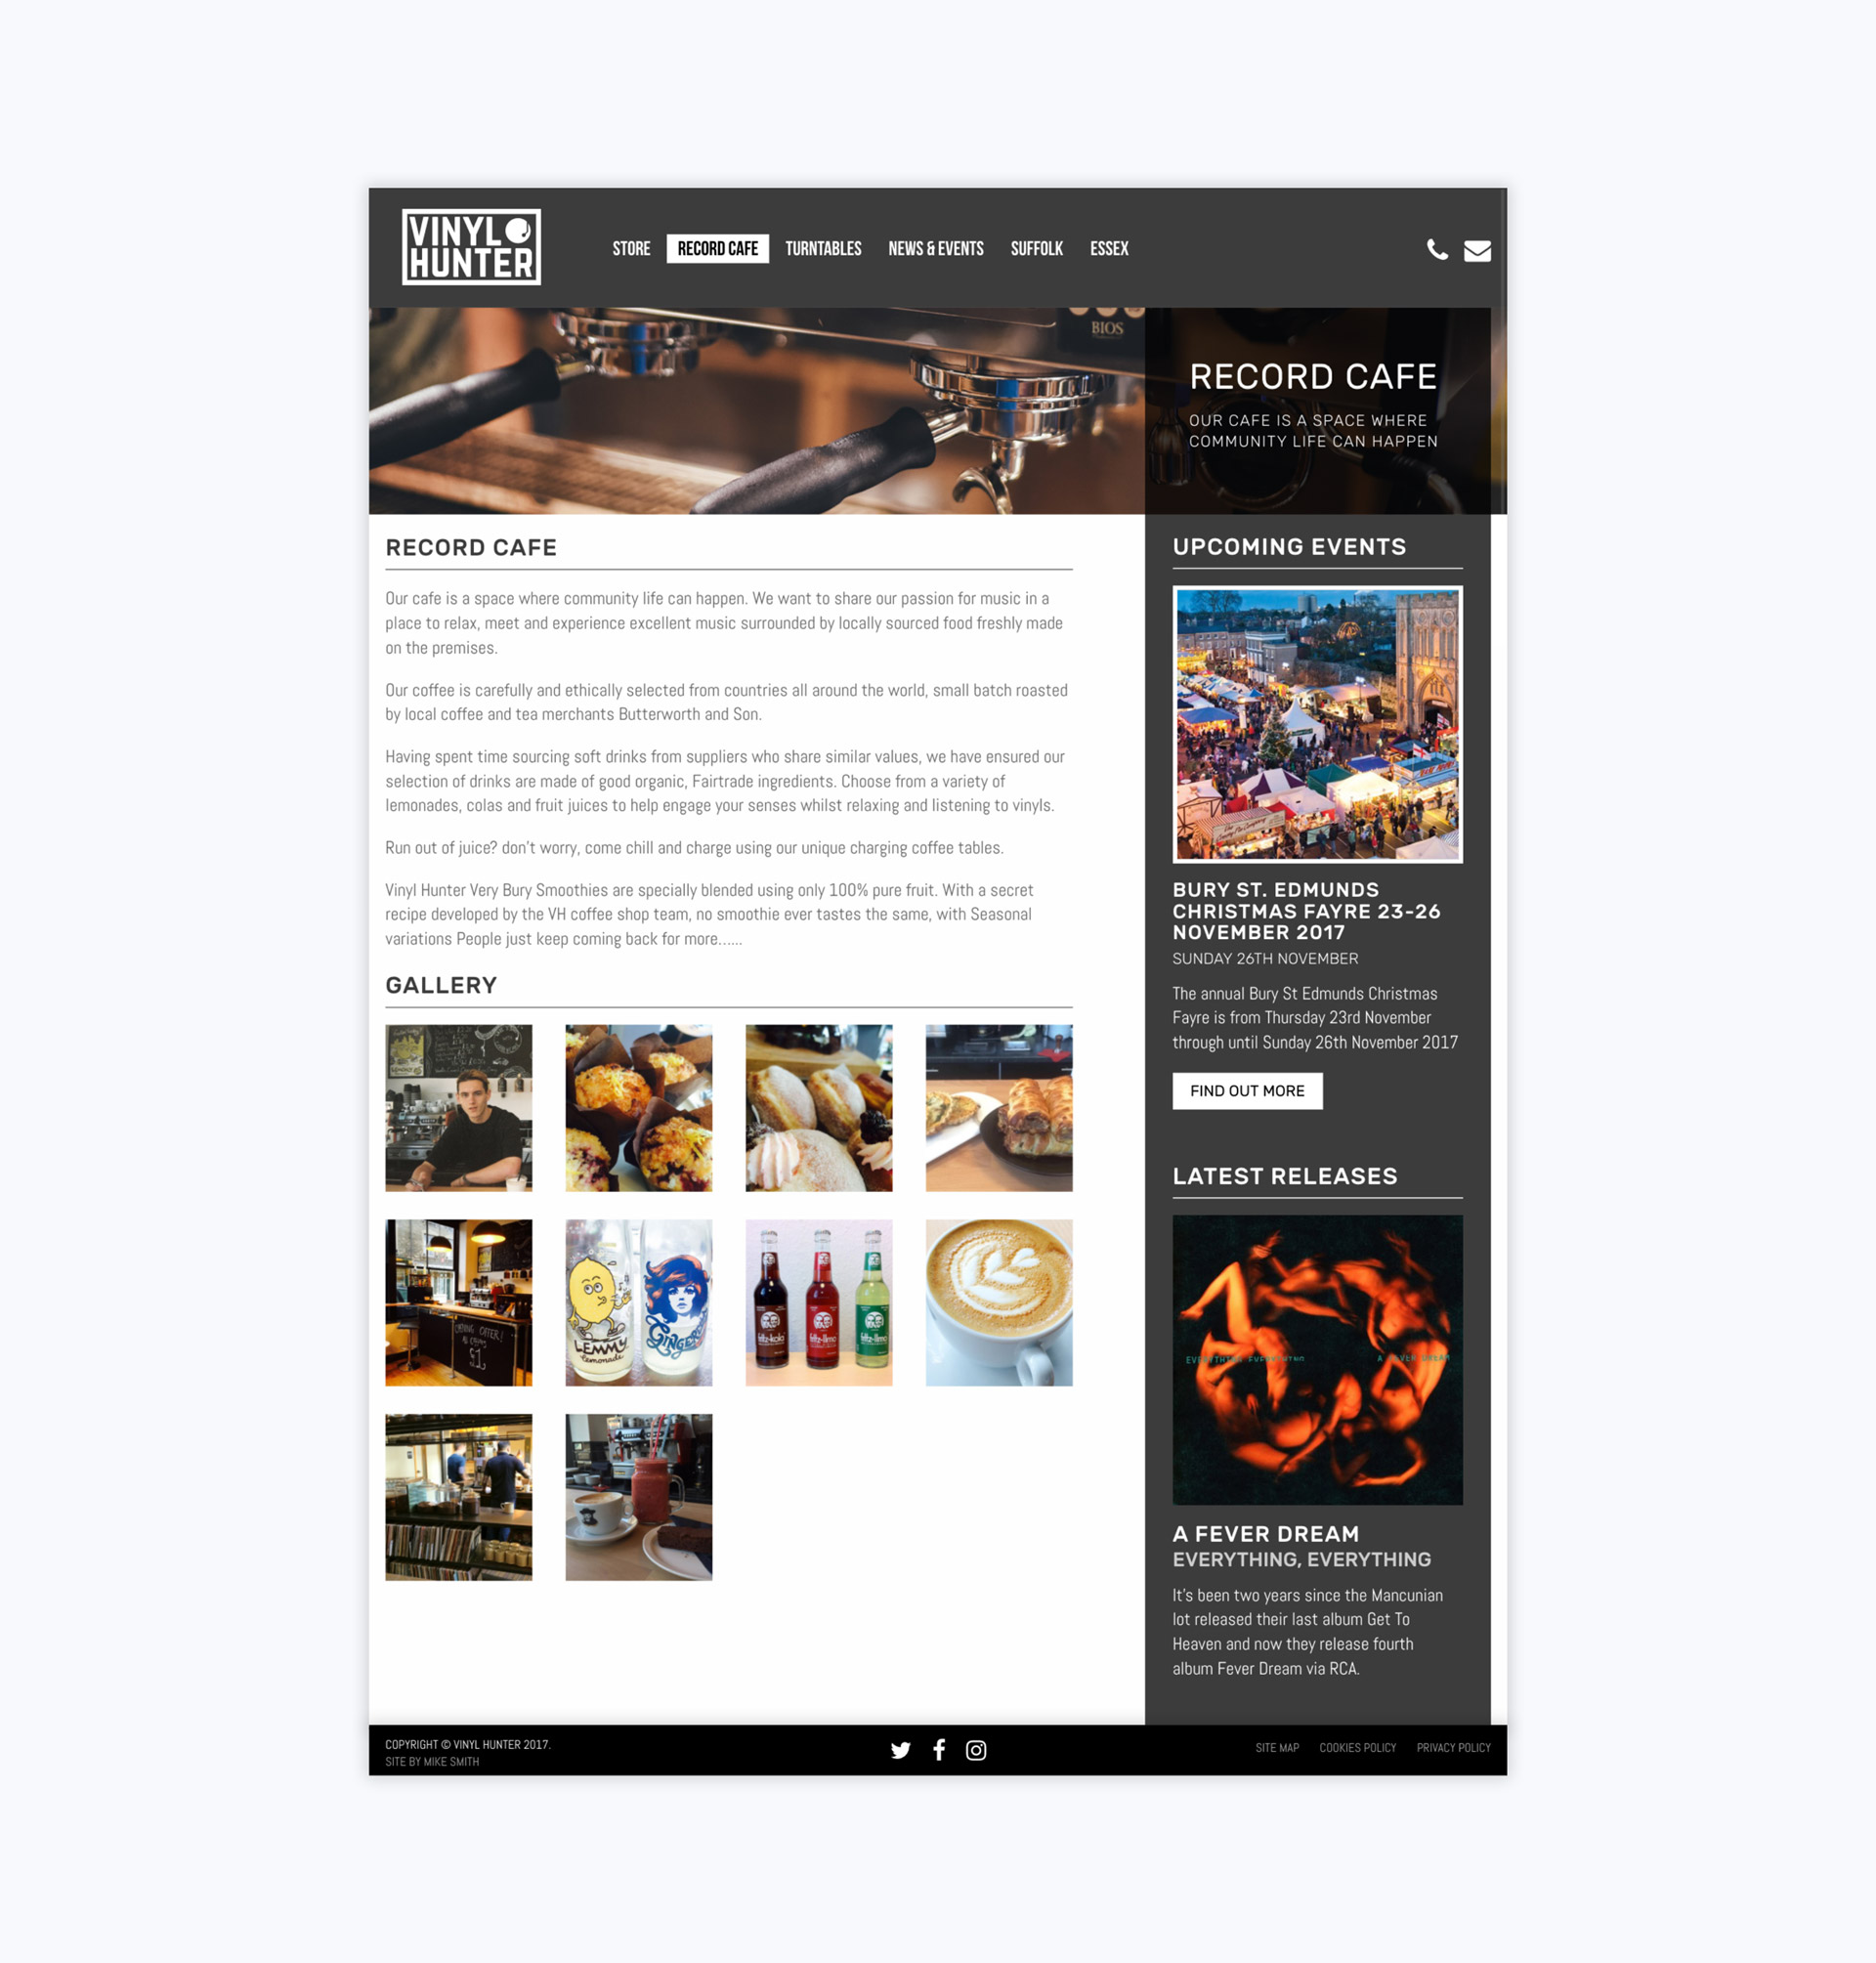 Vinyl Hunter Record Cafe Page Tablet